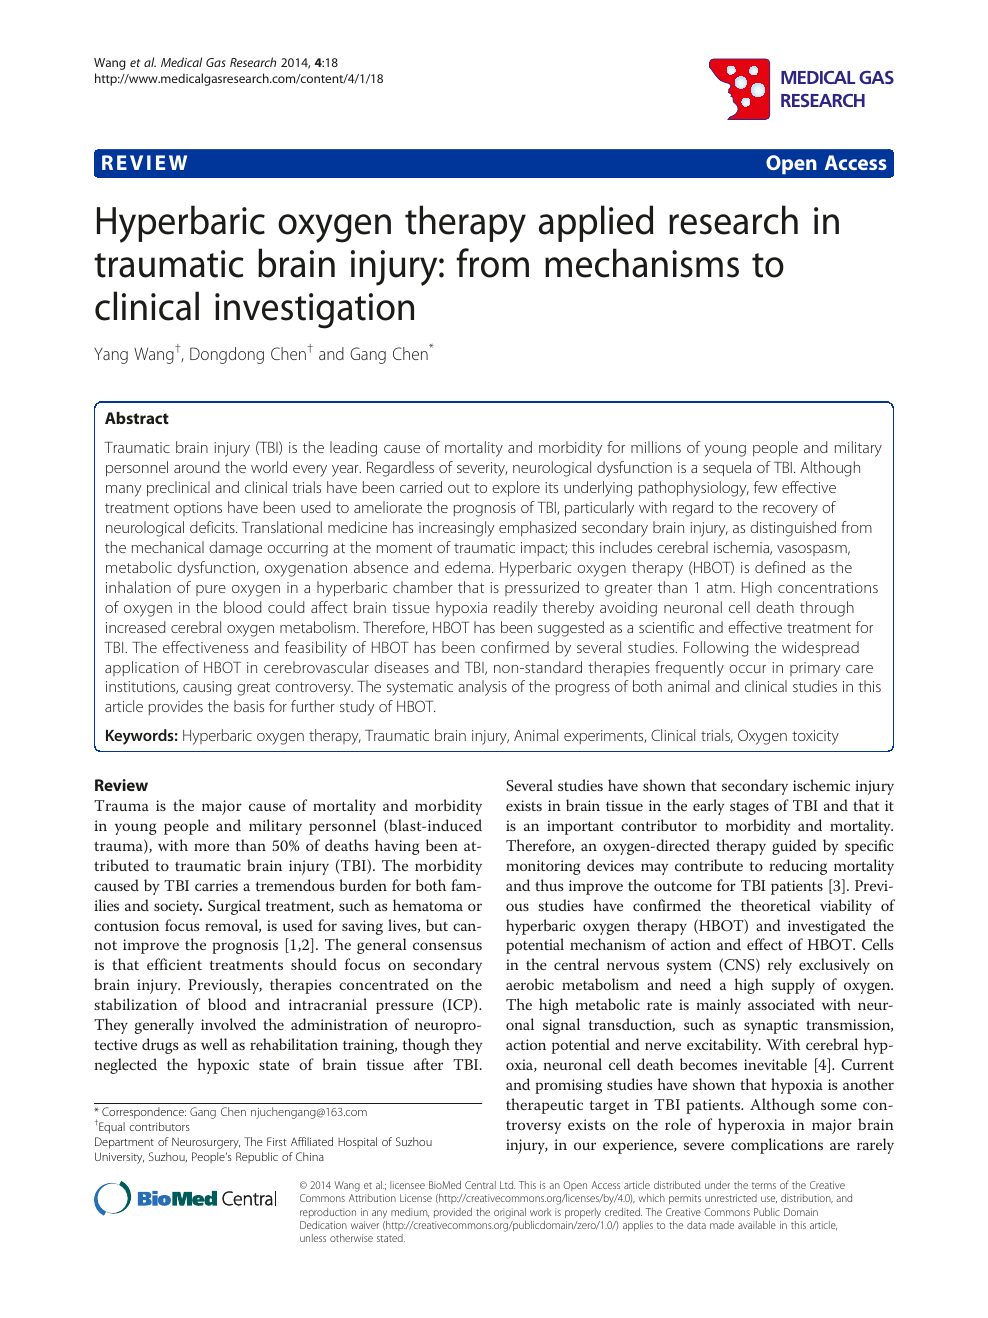 Literature Review Hbot Is Not >> Hyperbaric Oxygen Therapy Applied Research In Traumatic Brain Injury